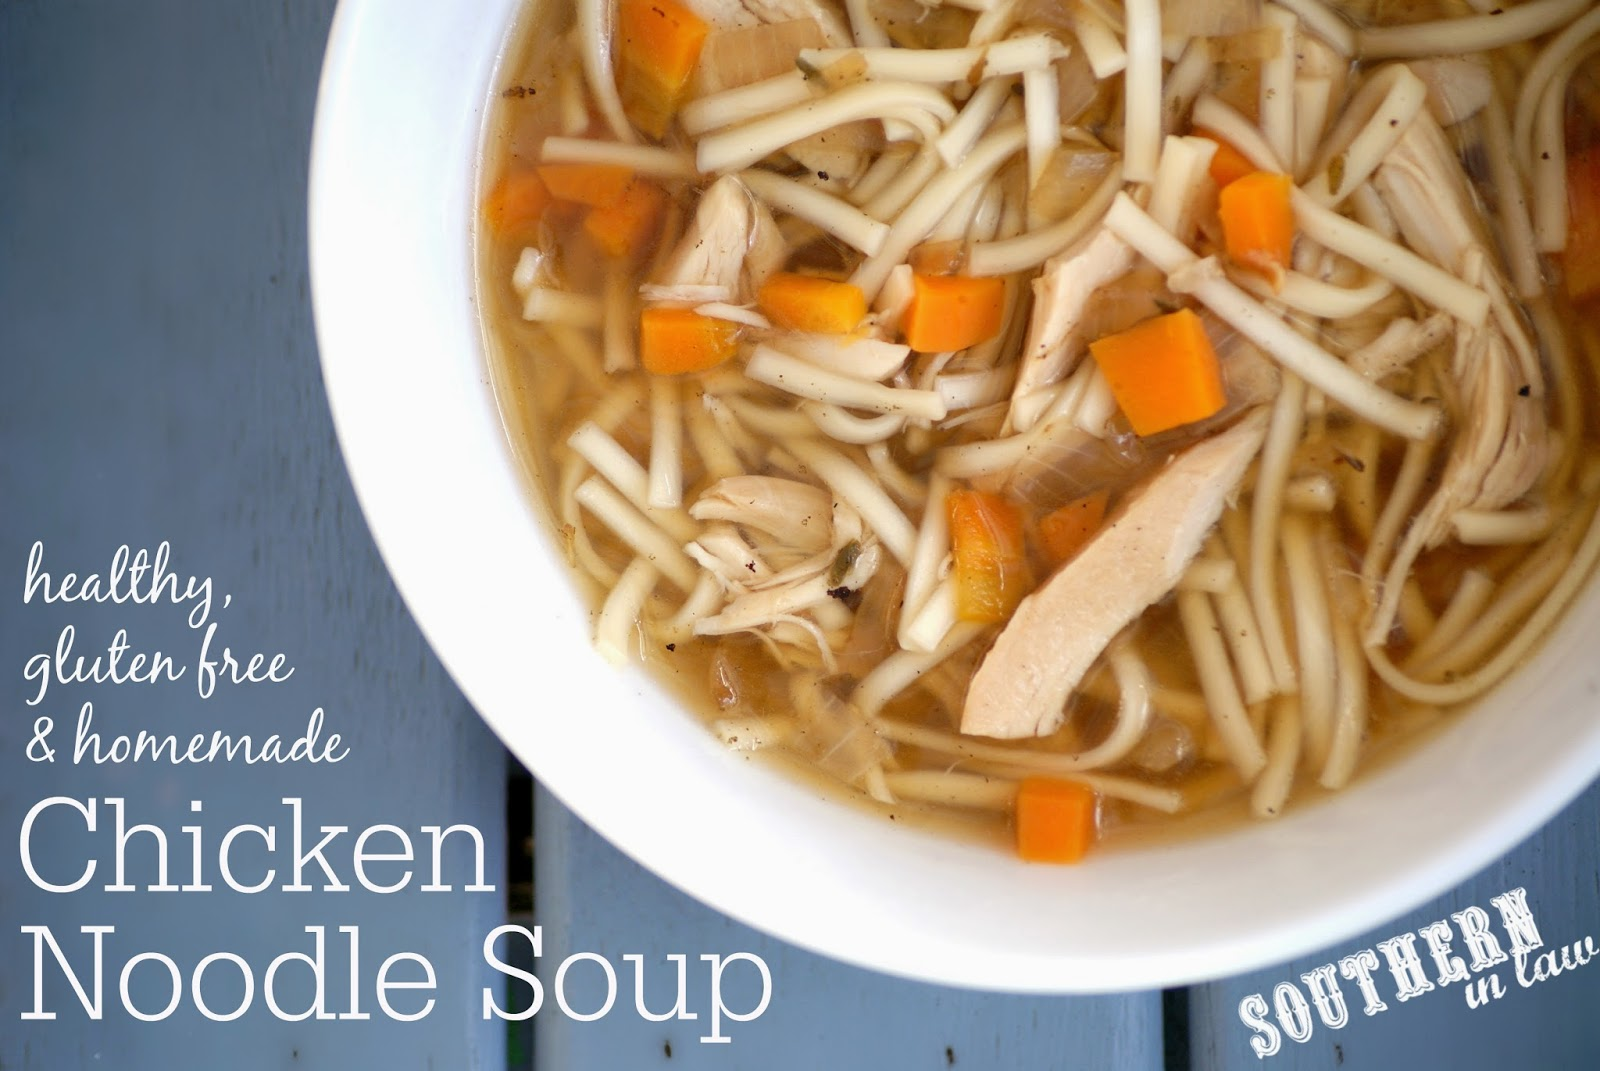 Healthy Homemade Chicken Noodle Soup Recipe - gluten free, additive free, sugar free, clean eating friendly, healthy, low fat